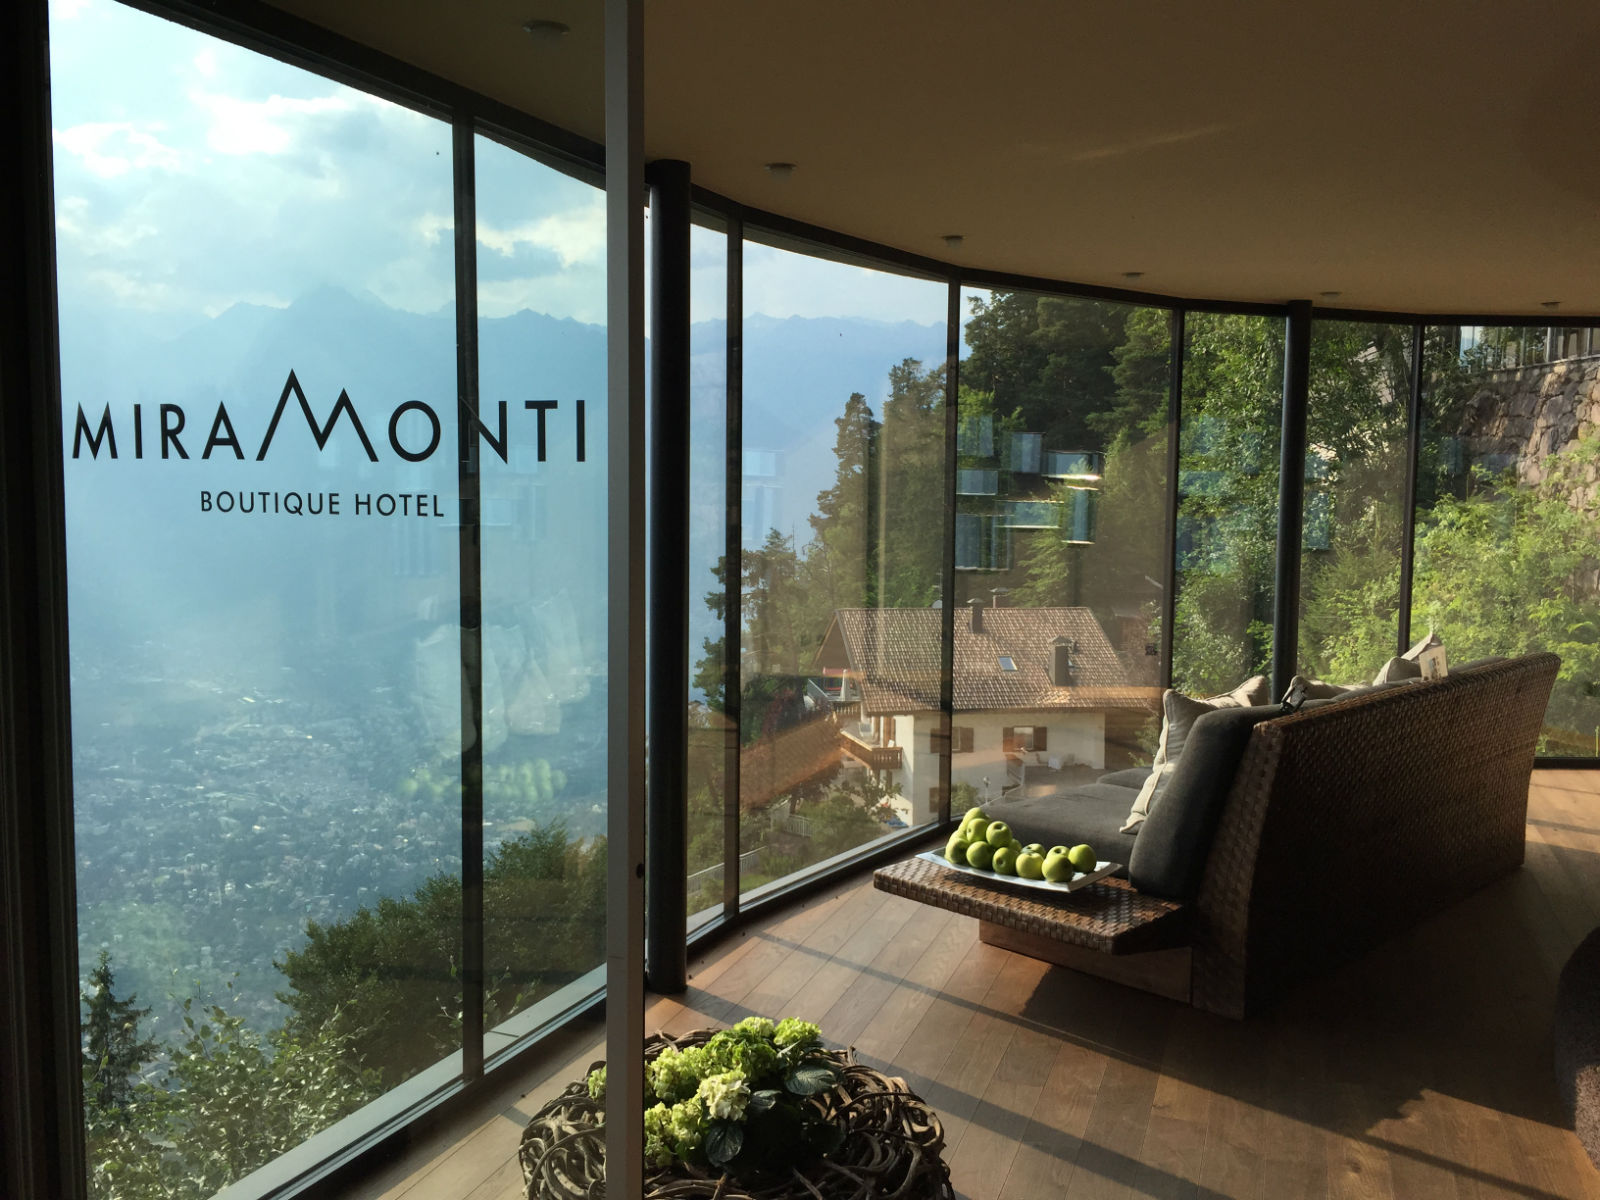 Miramonti boutique hotel in s dtirol hotelreview for Designhotel suedtirol